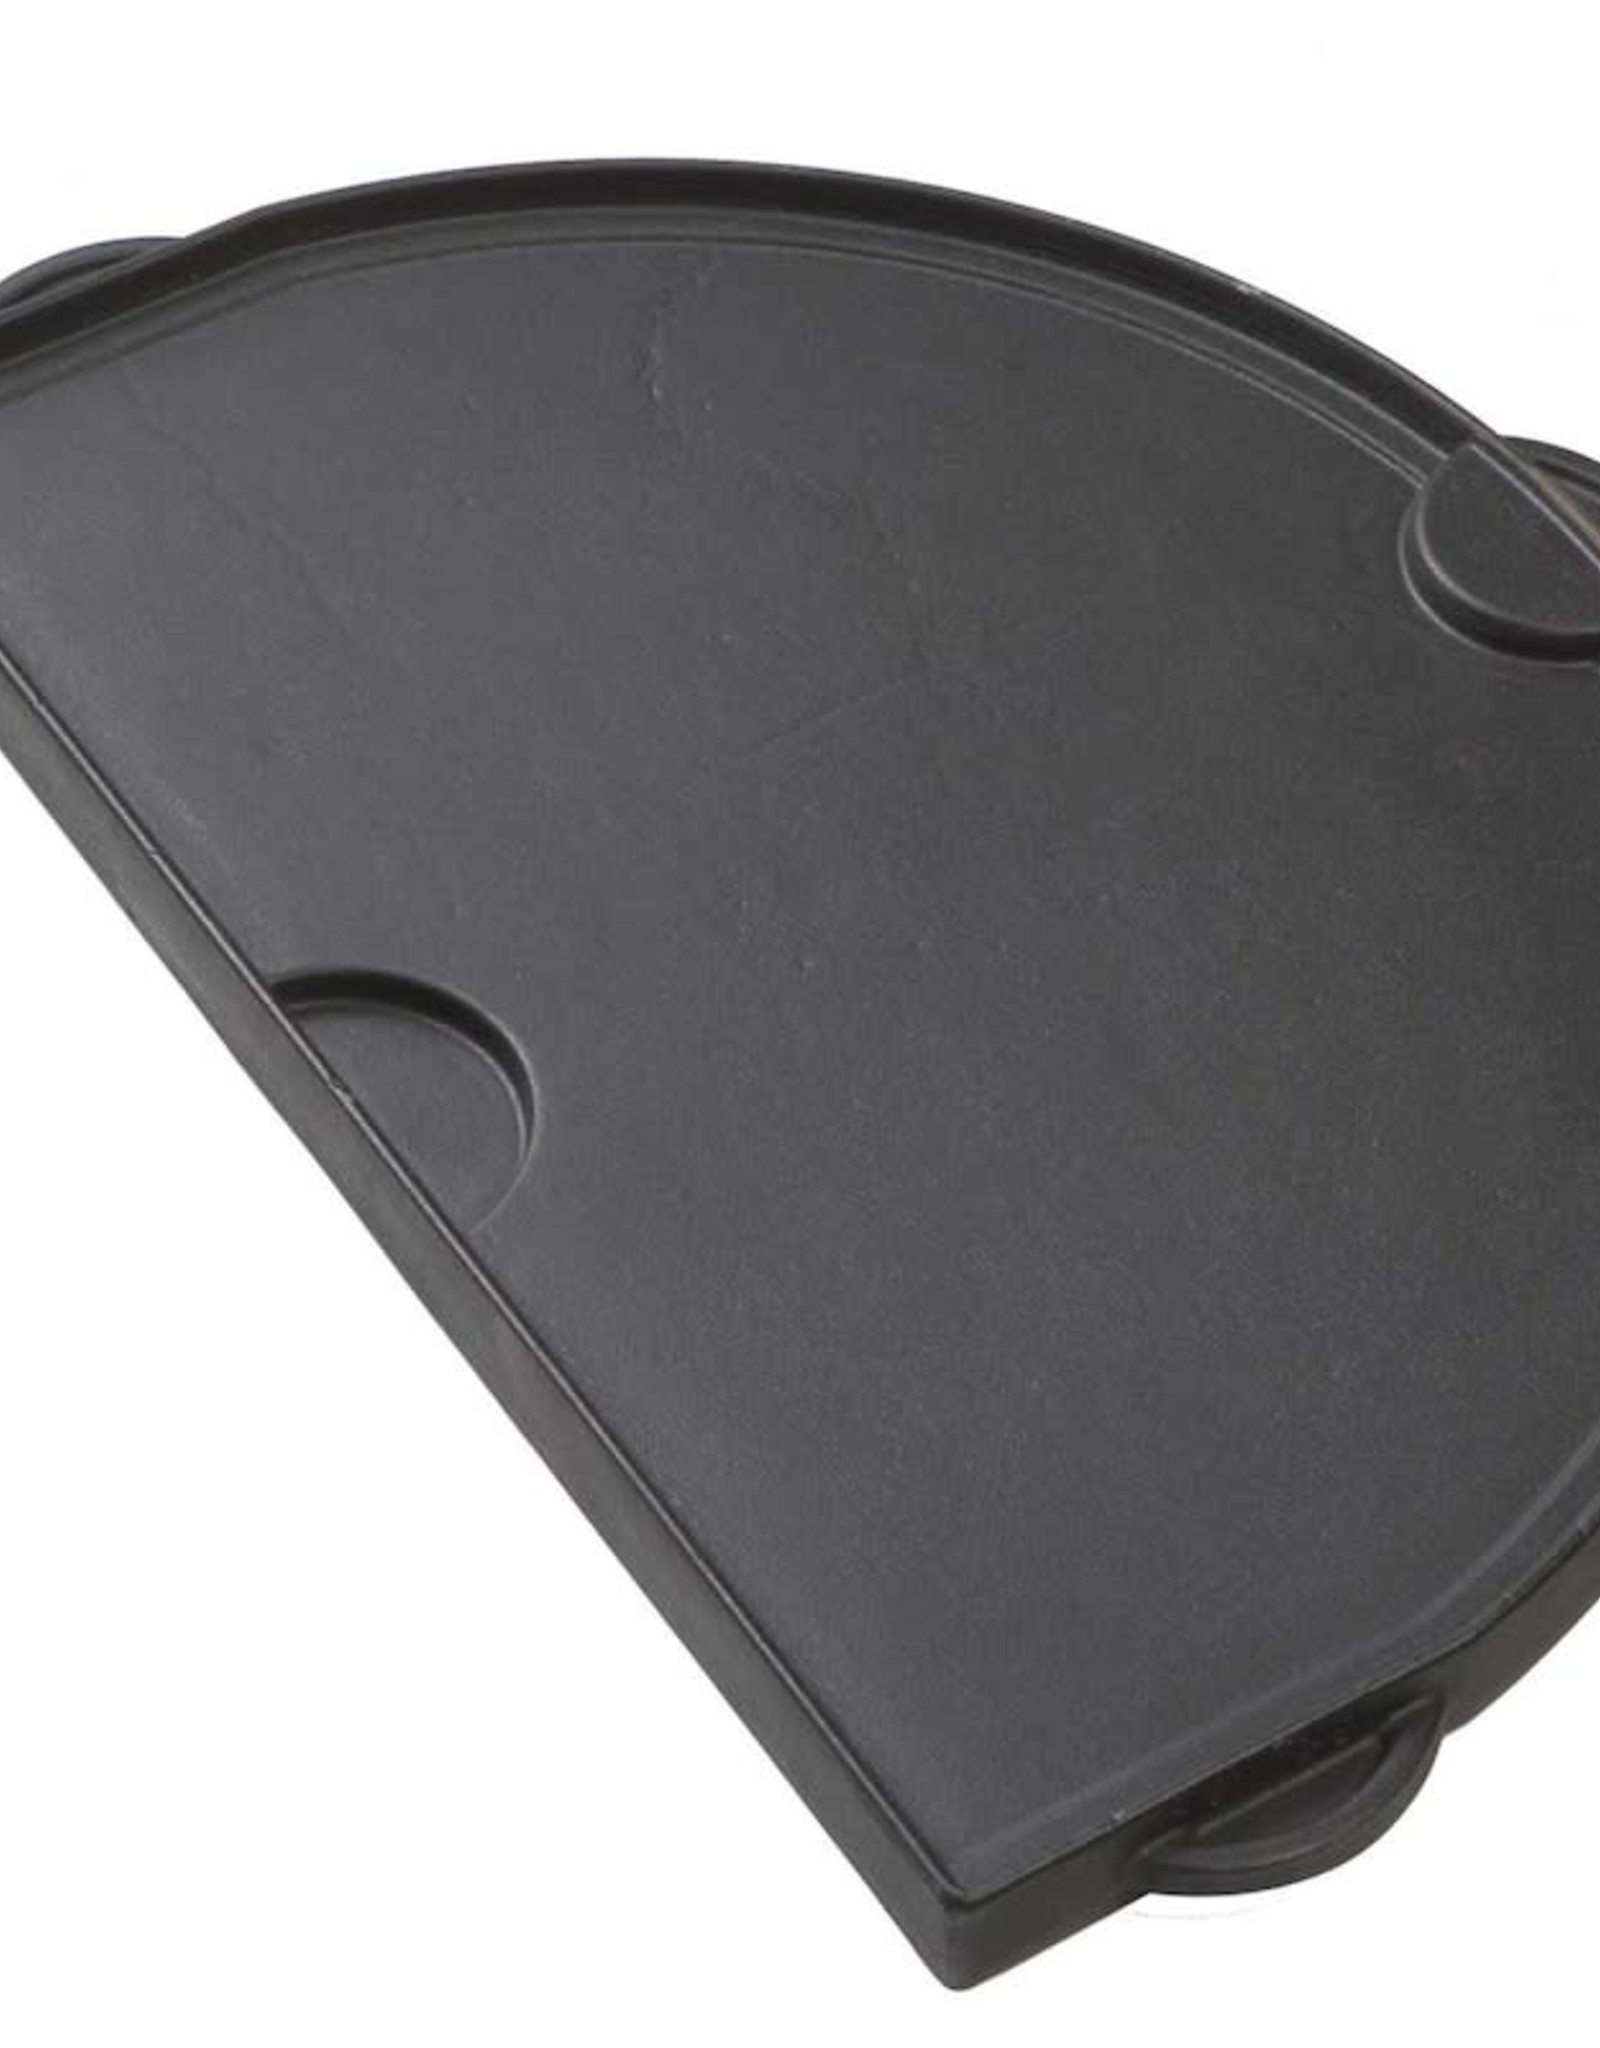 Primo Half Moon Cast Iron Griddle for Oval LG 300 #365